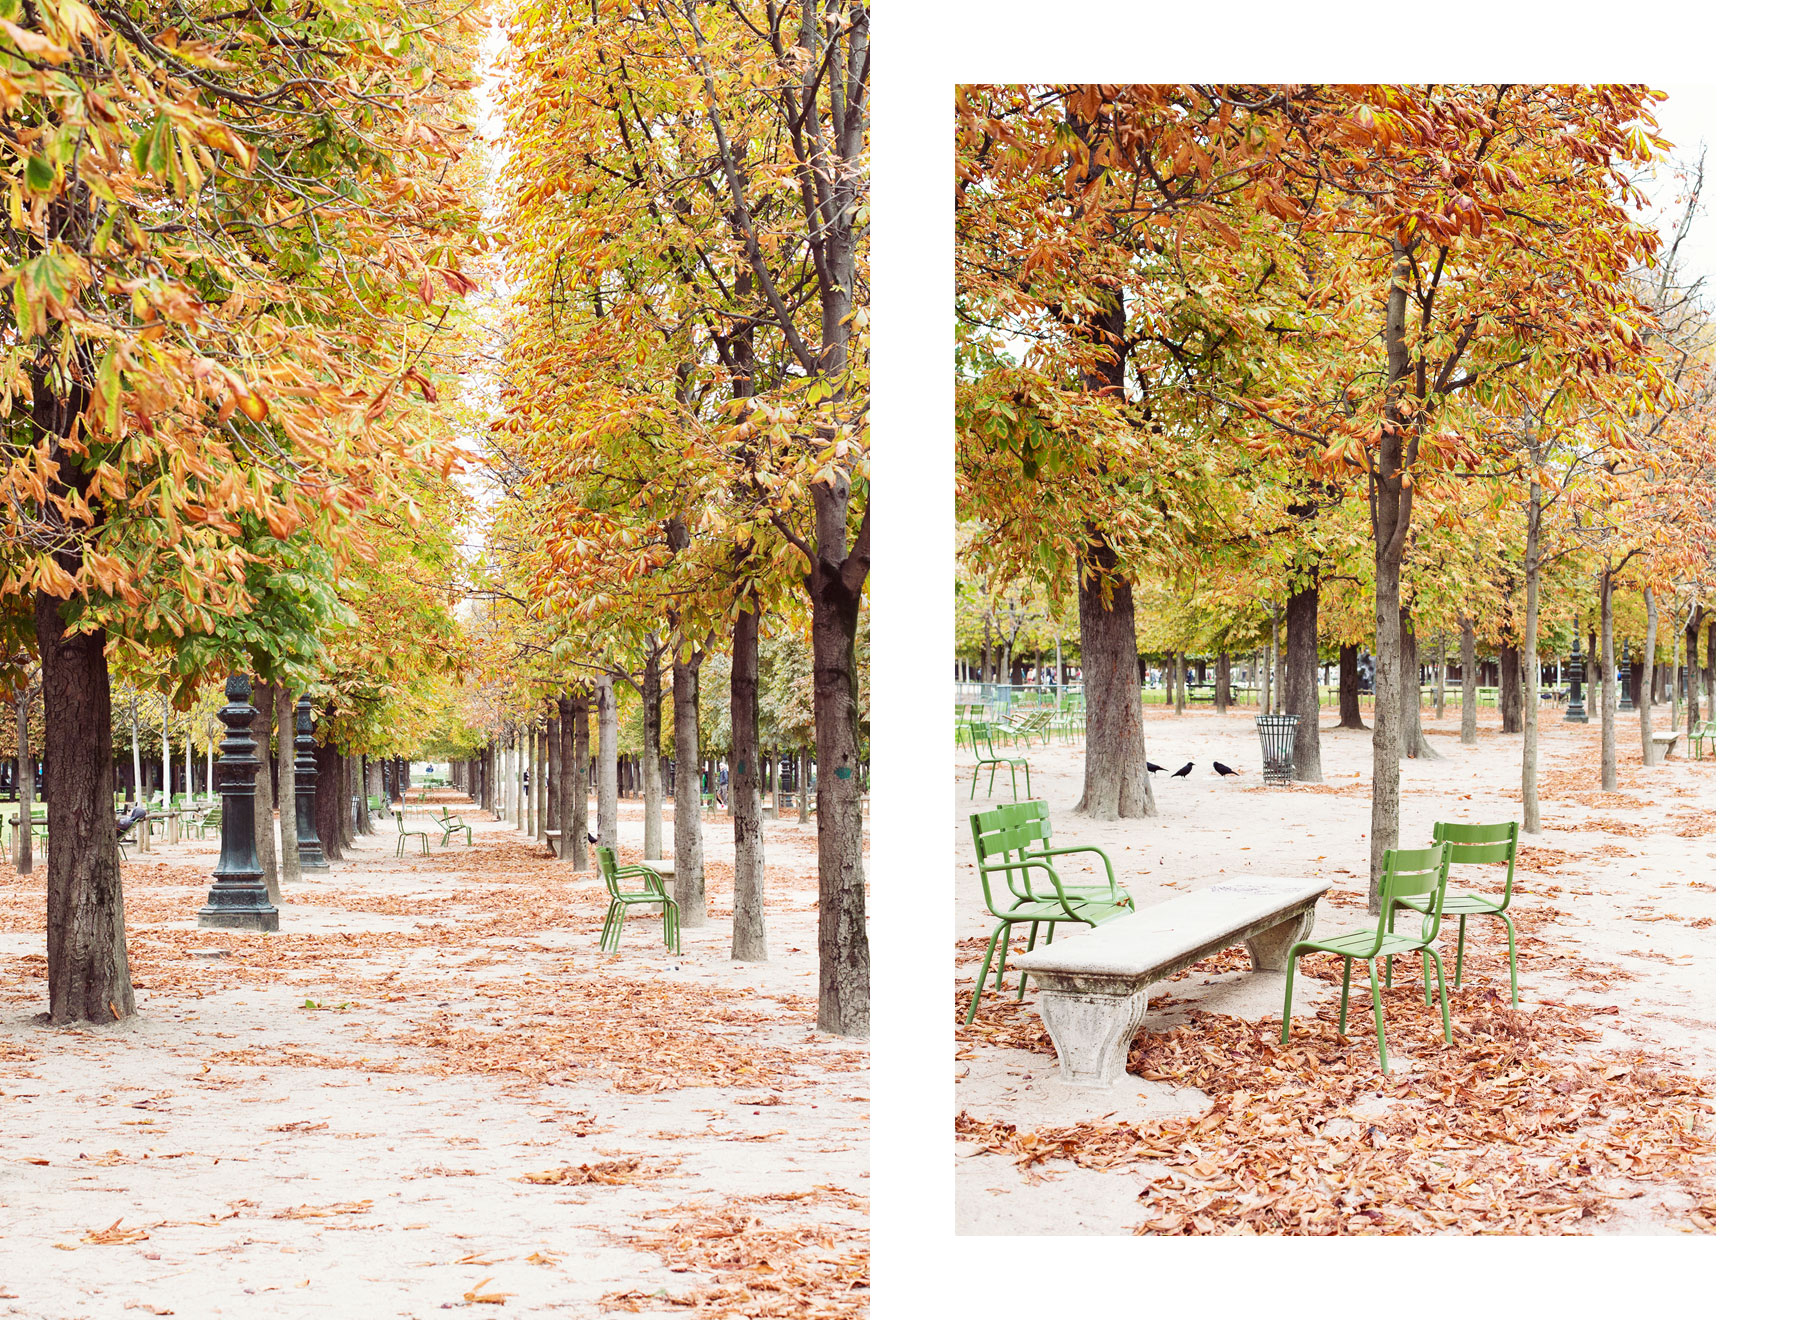 Autumn in Paris by Carin Olsson (Paris in Four Months)